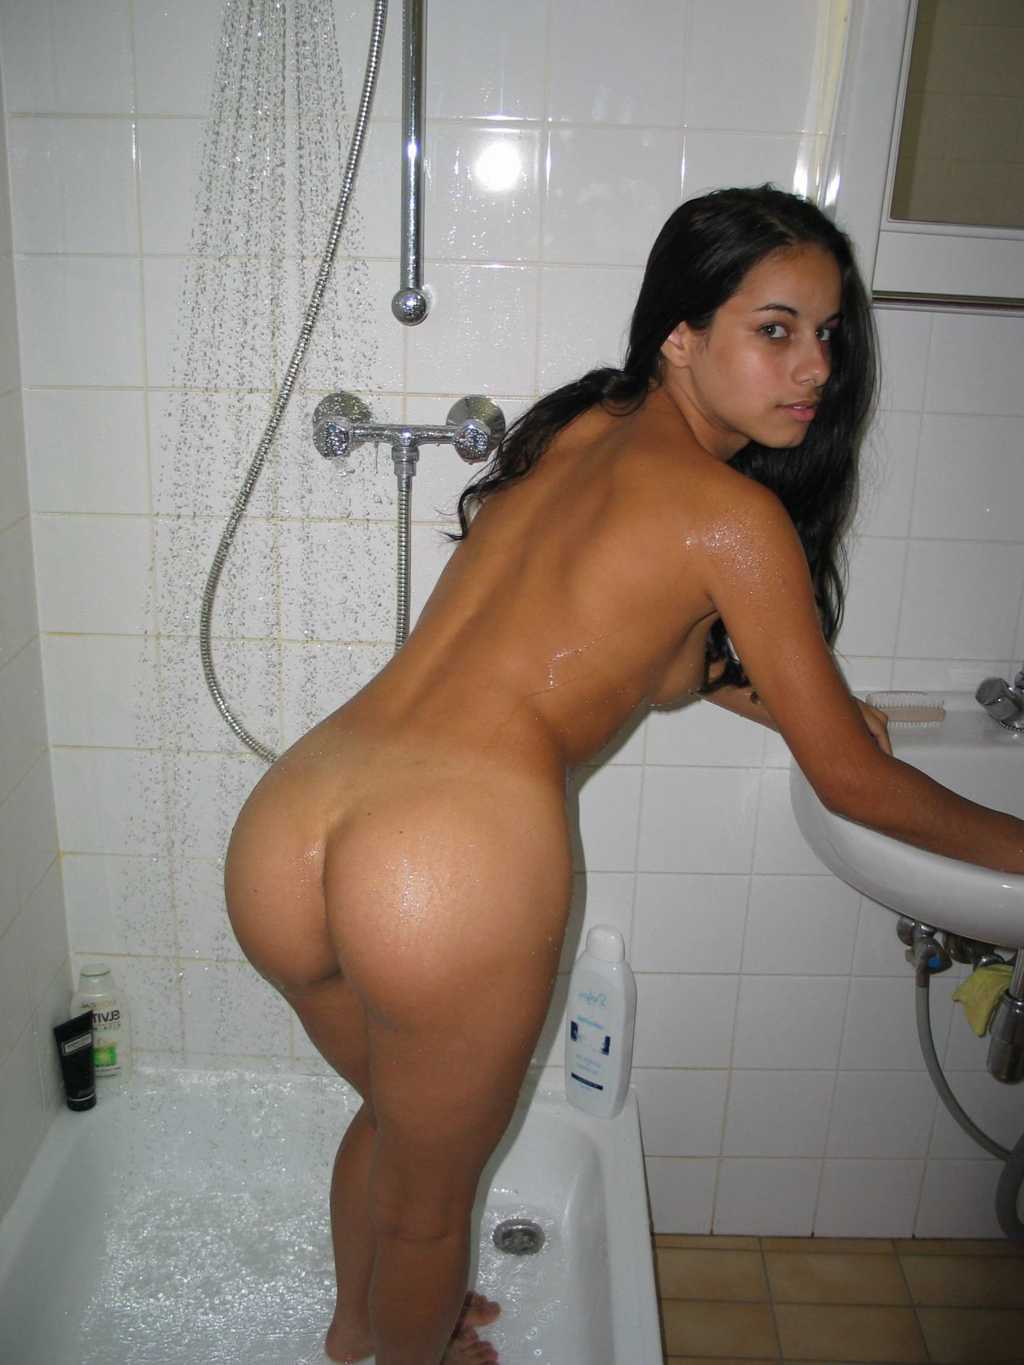 chubby latinas naked shower